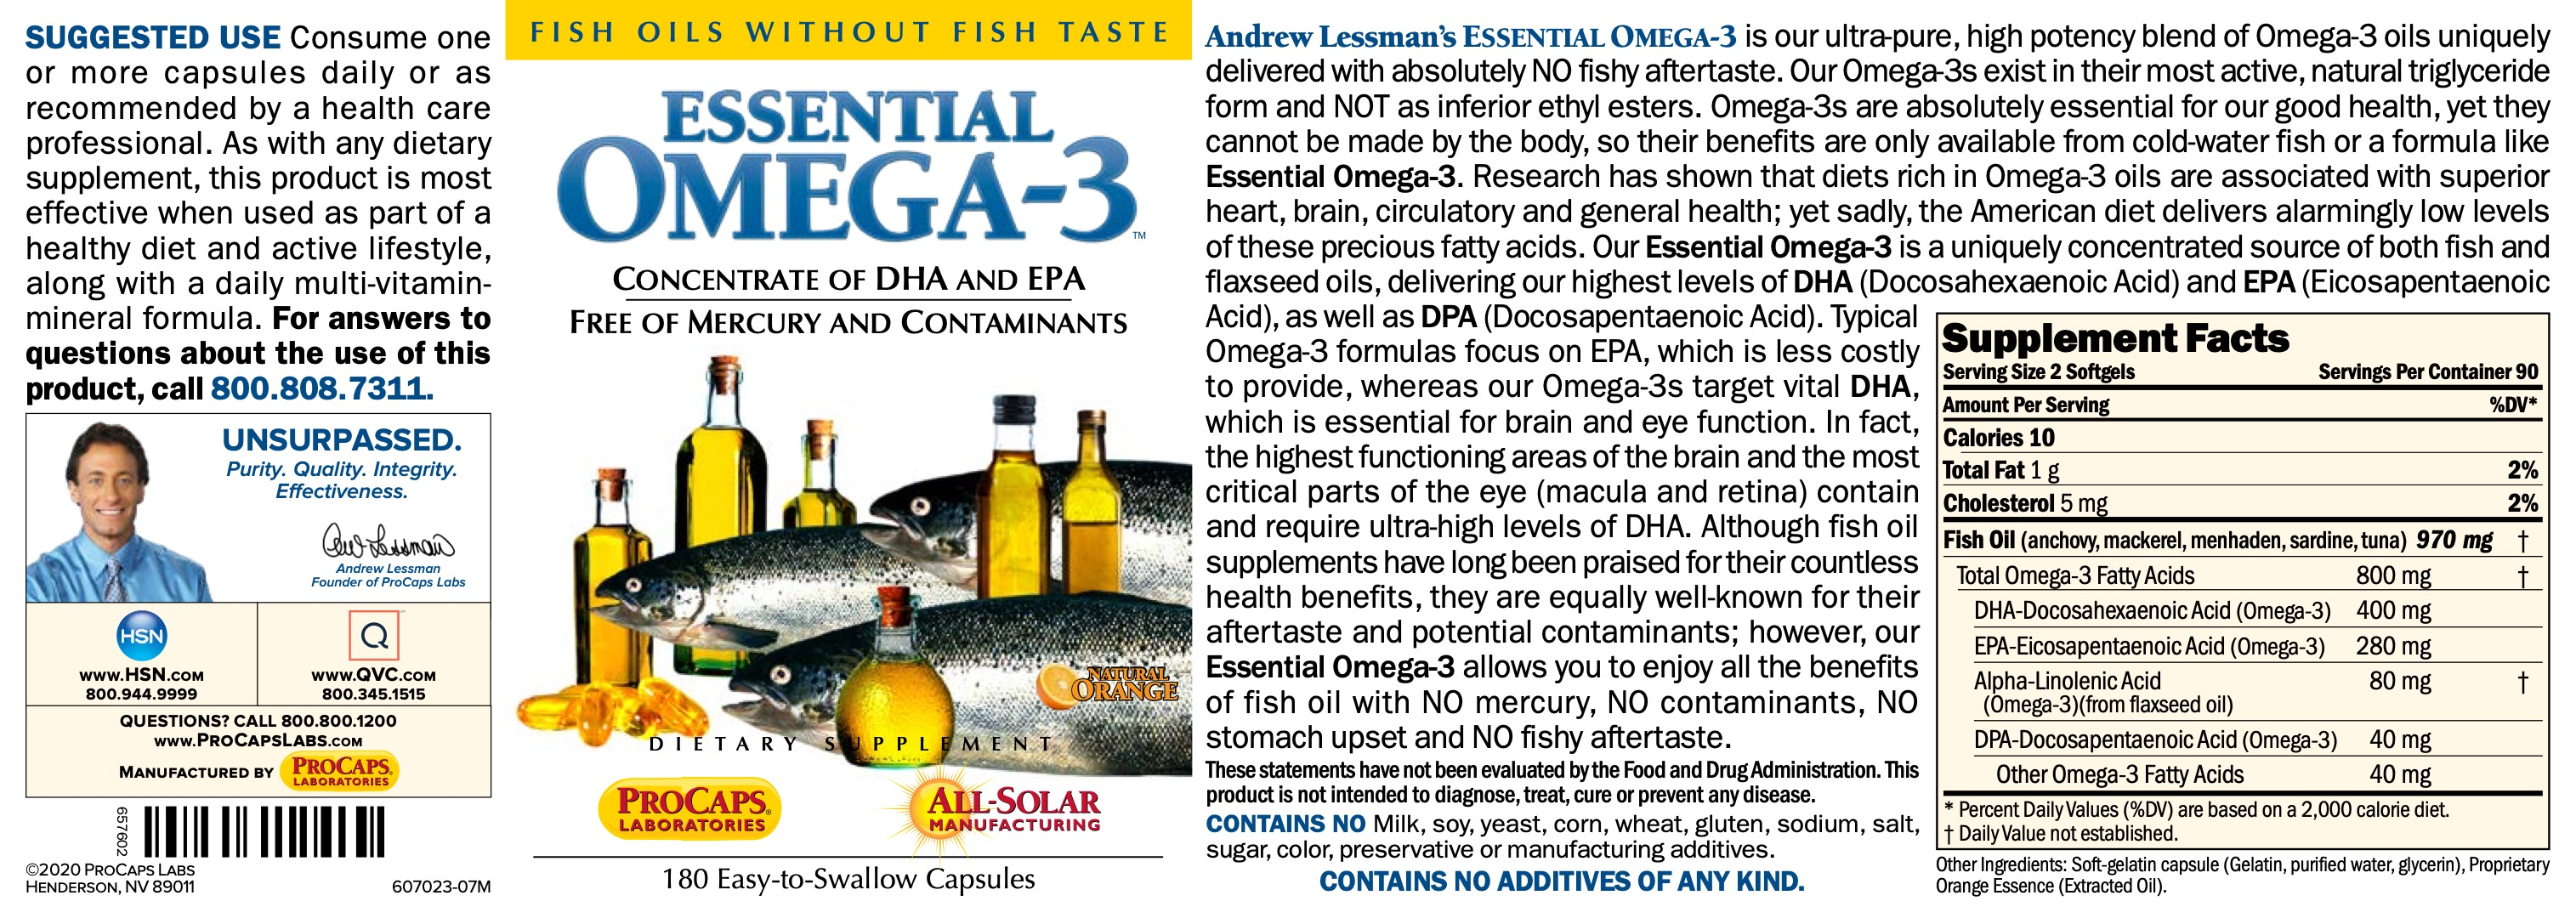 Essential-Omega-3-No-Fishy-Taste-Orange-Softgels-Cardiovascular-Health